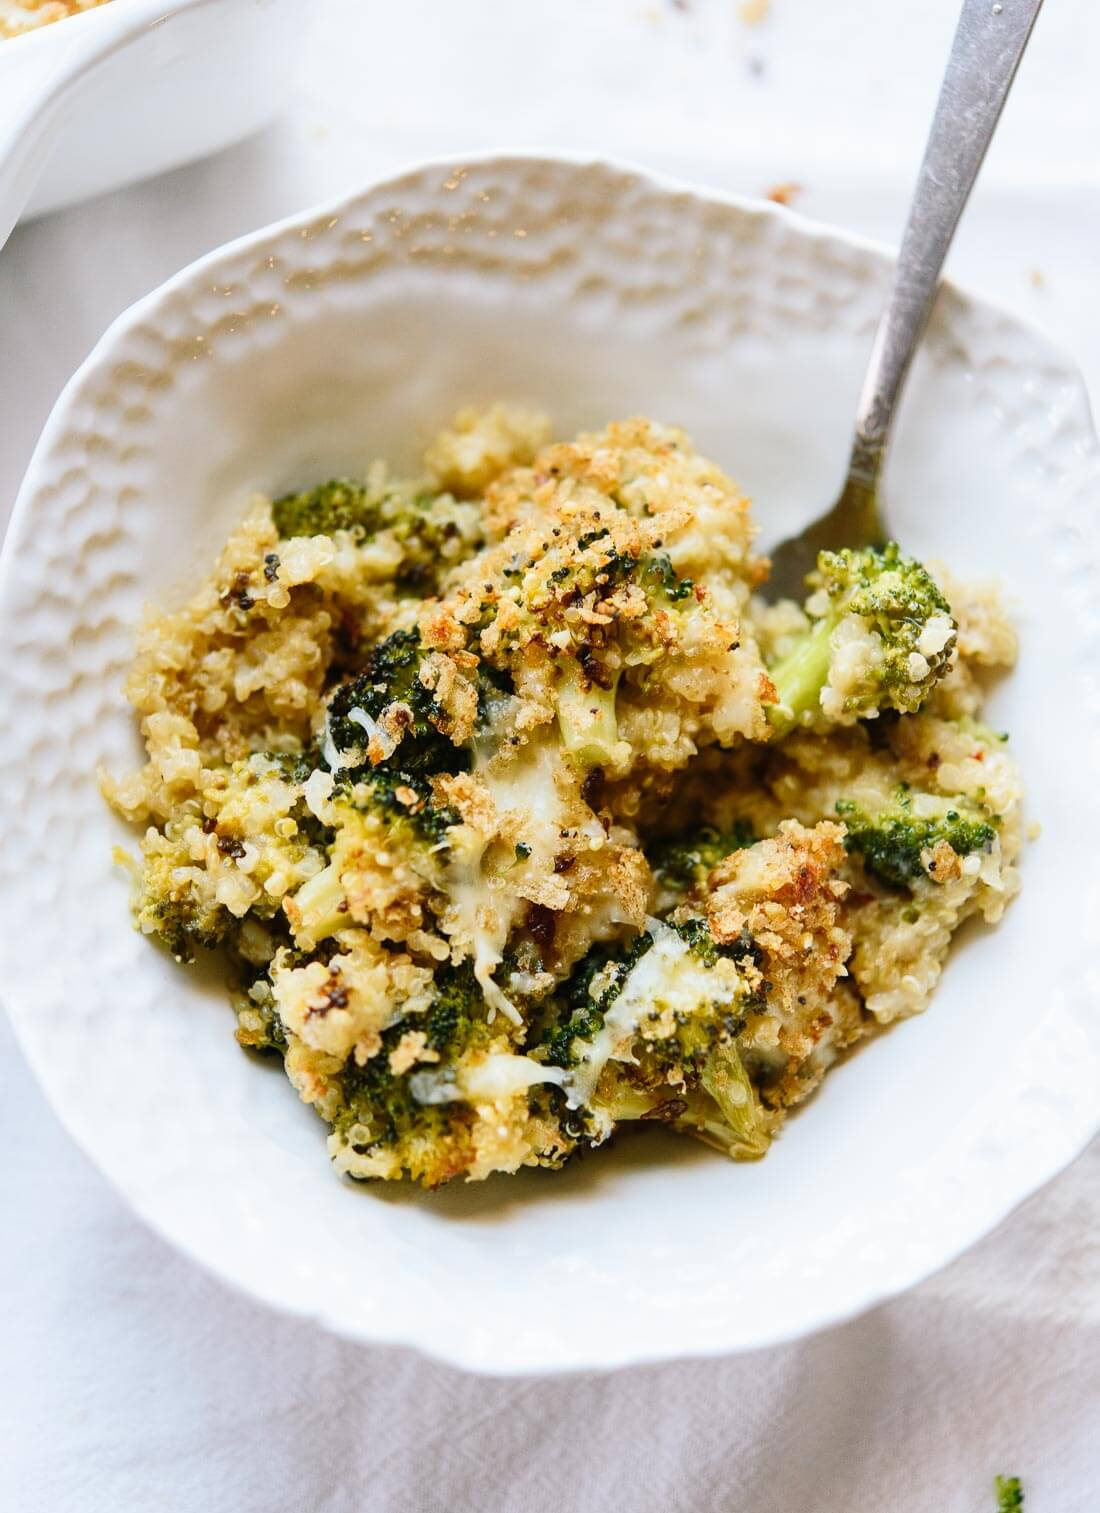 Broccoli casserole, made better with roasted broccoli, cheddar cheese, quinoa and whole grain breadcrumbs. - cookieandkate.com